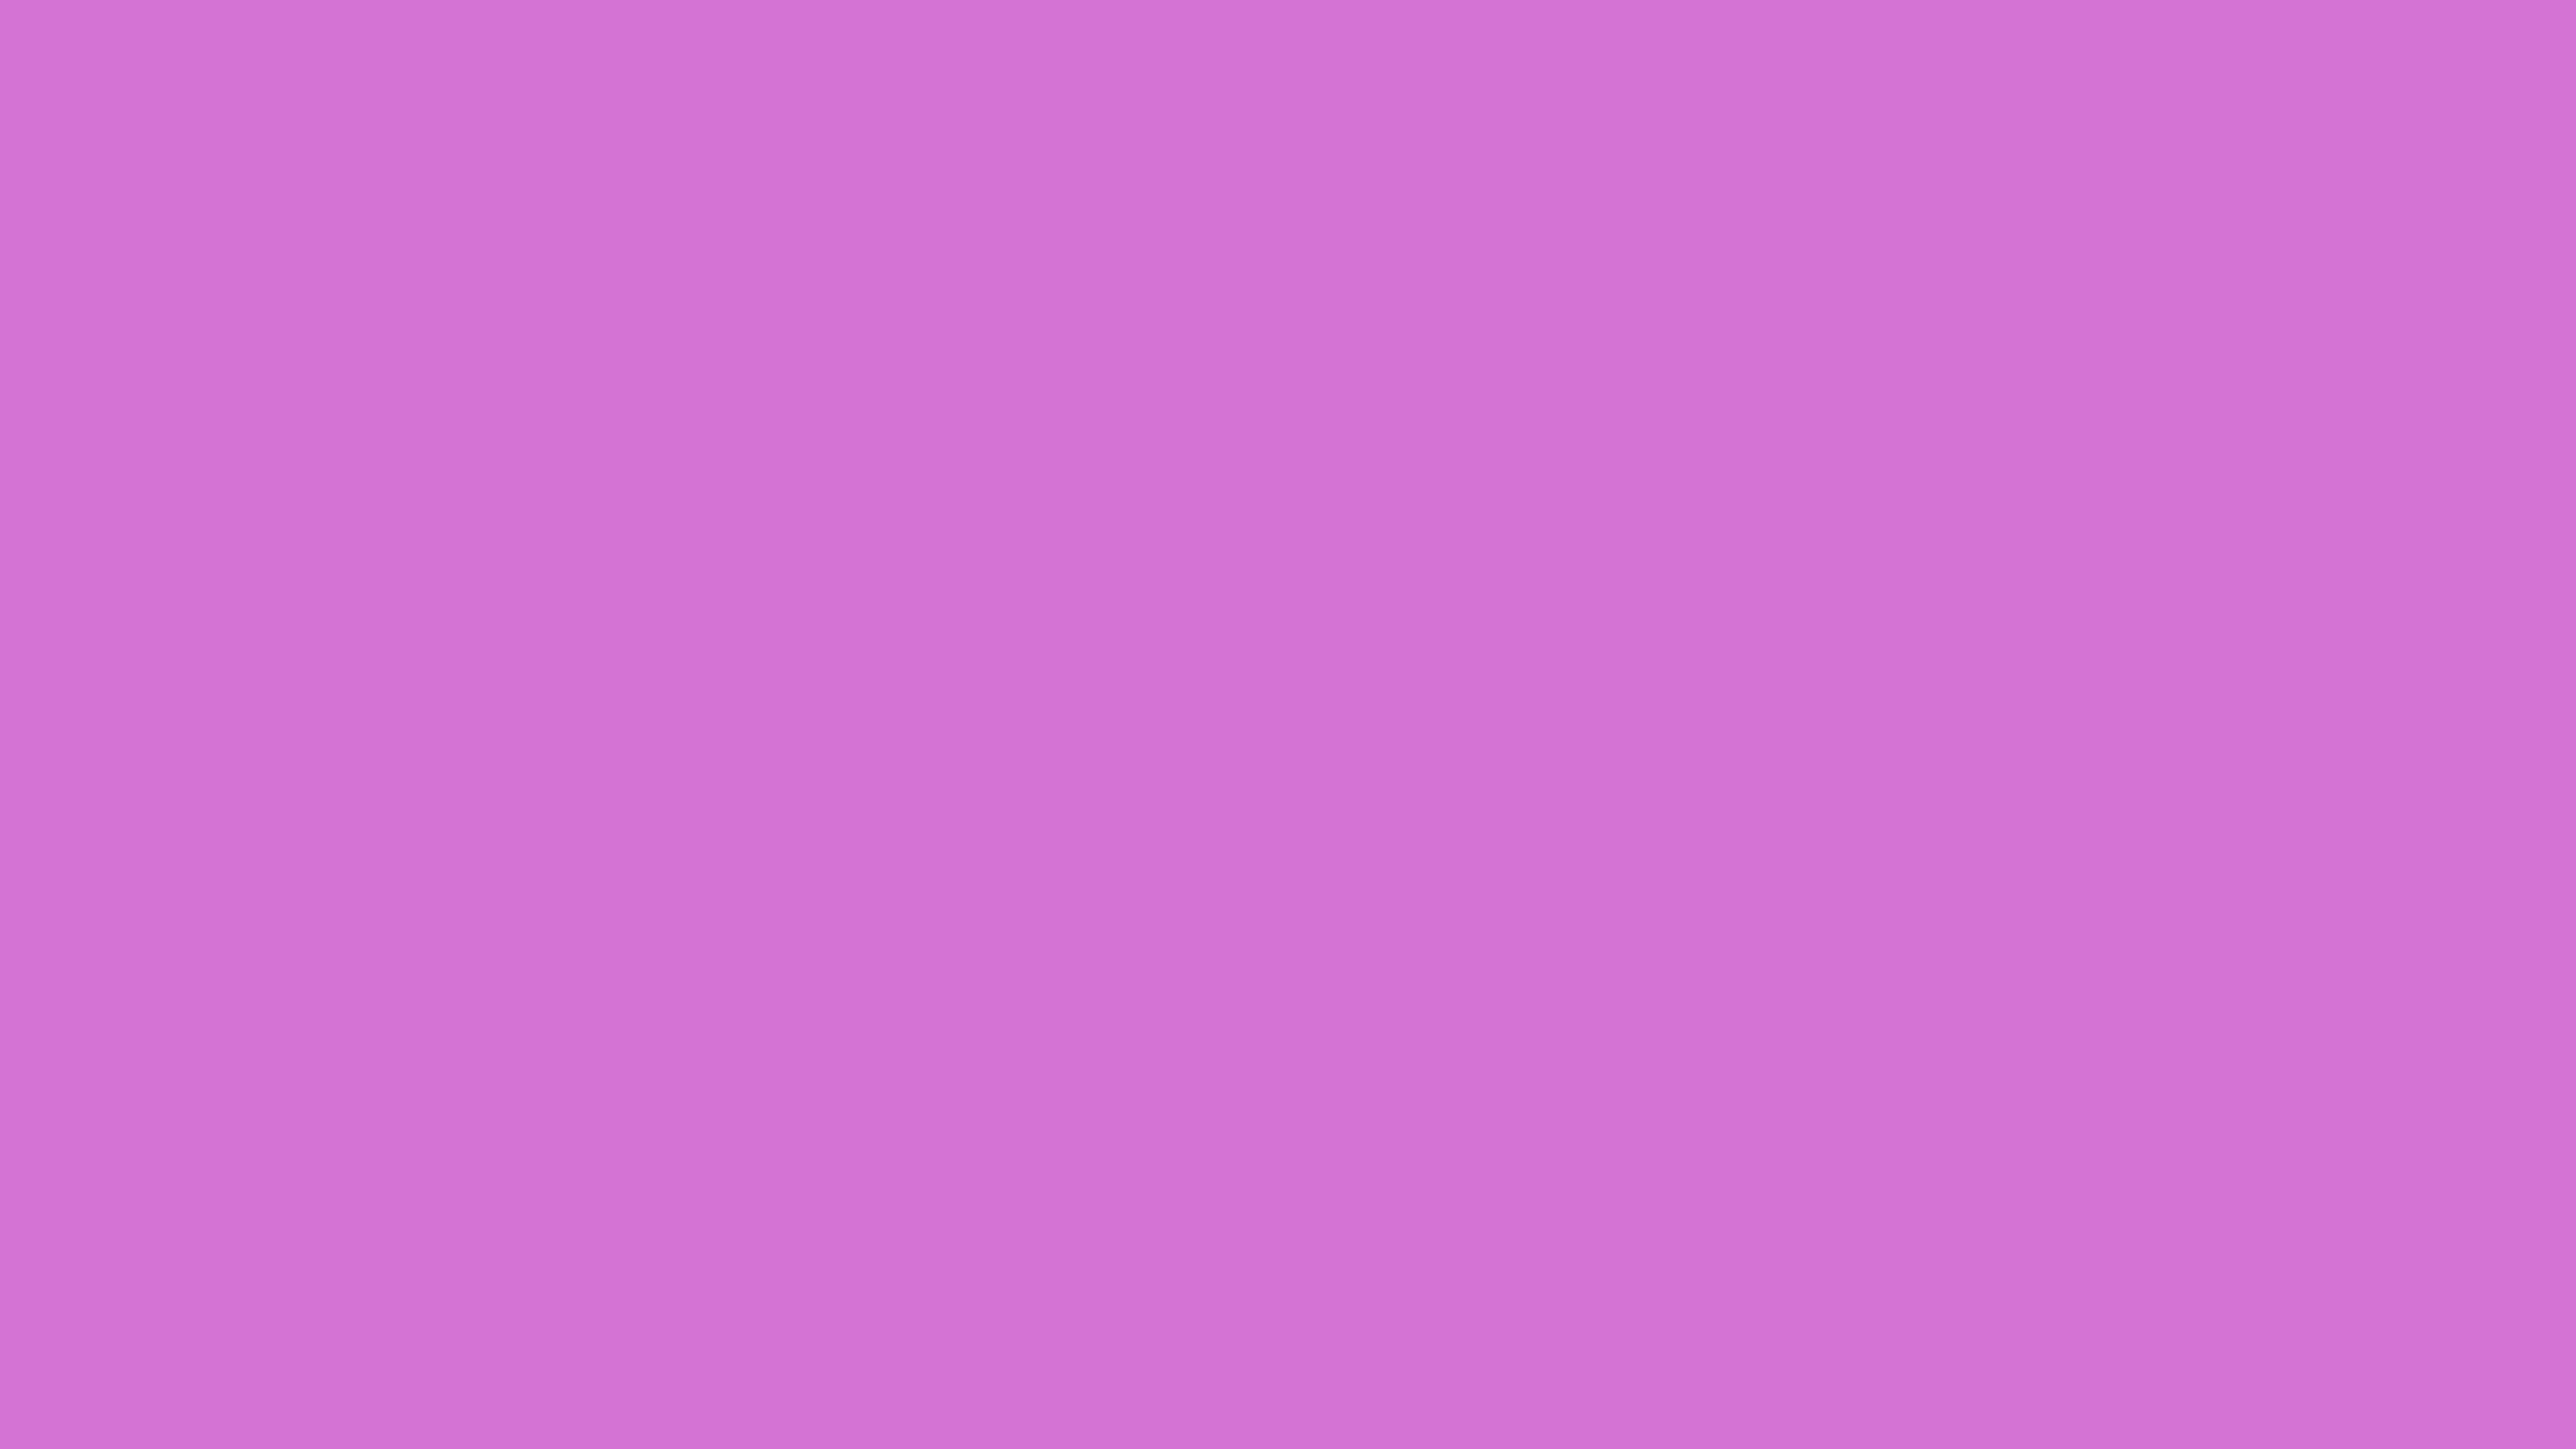 4096x2304 French Mauve Solid Color Background